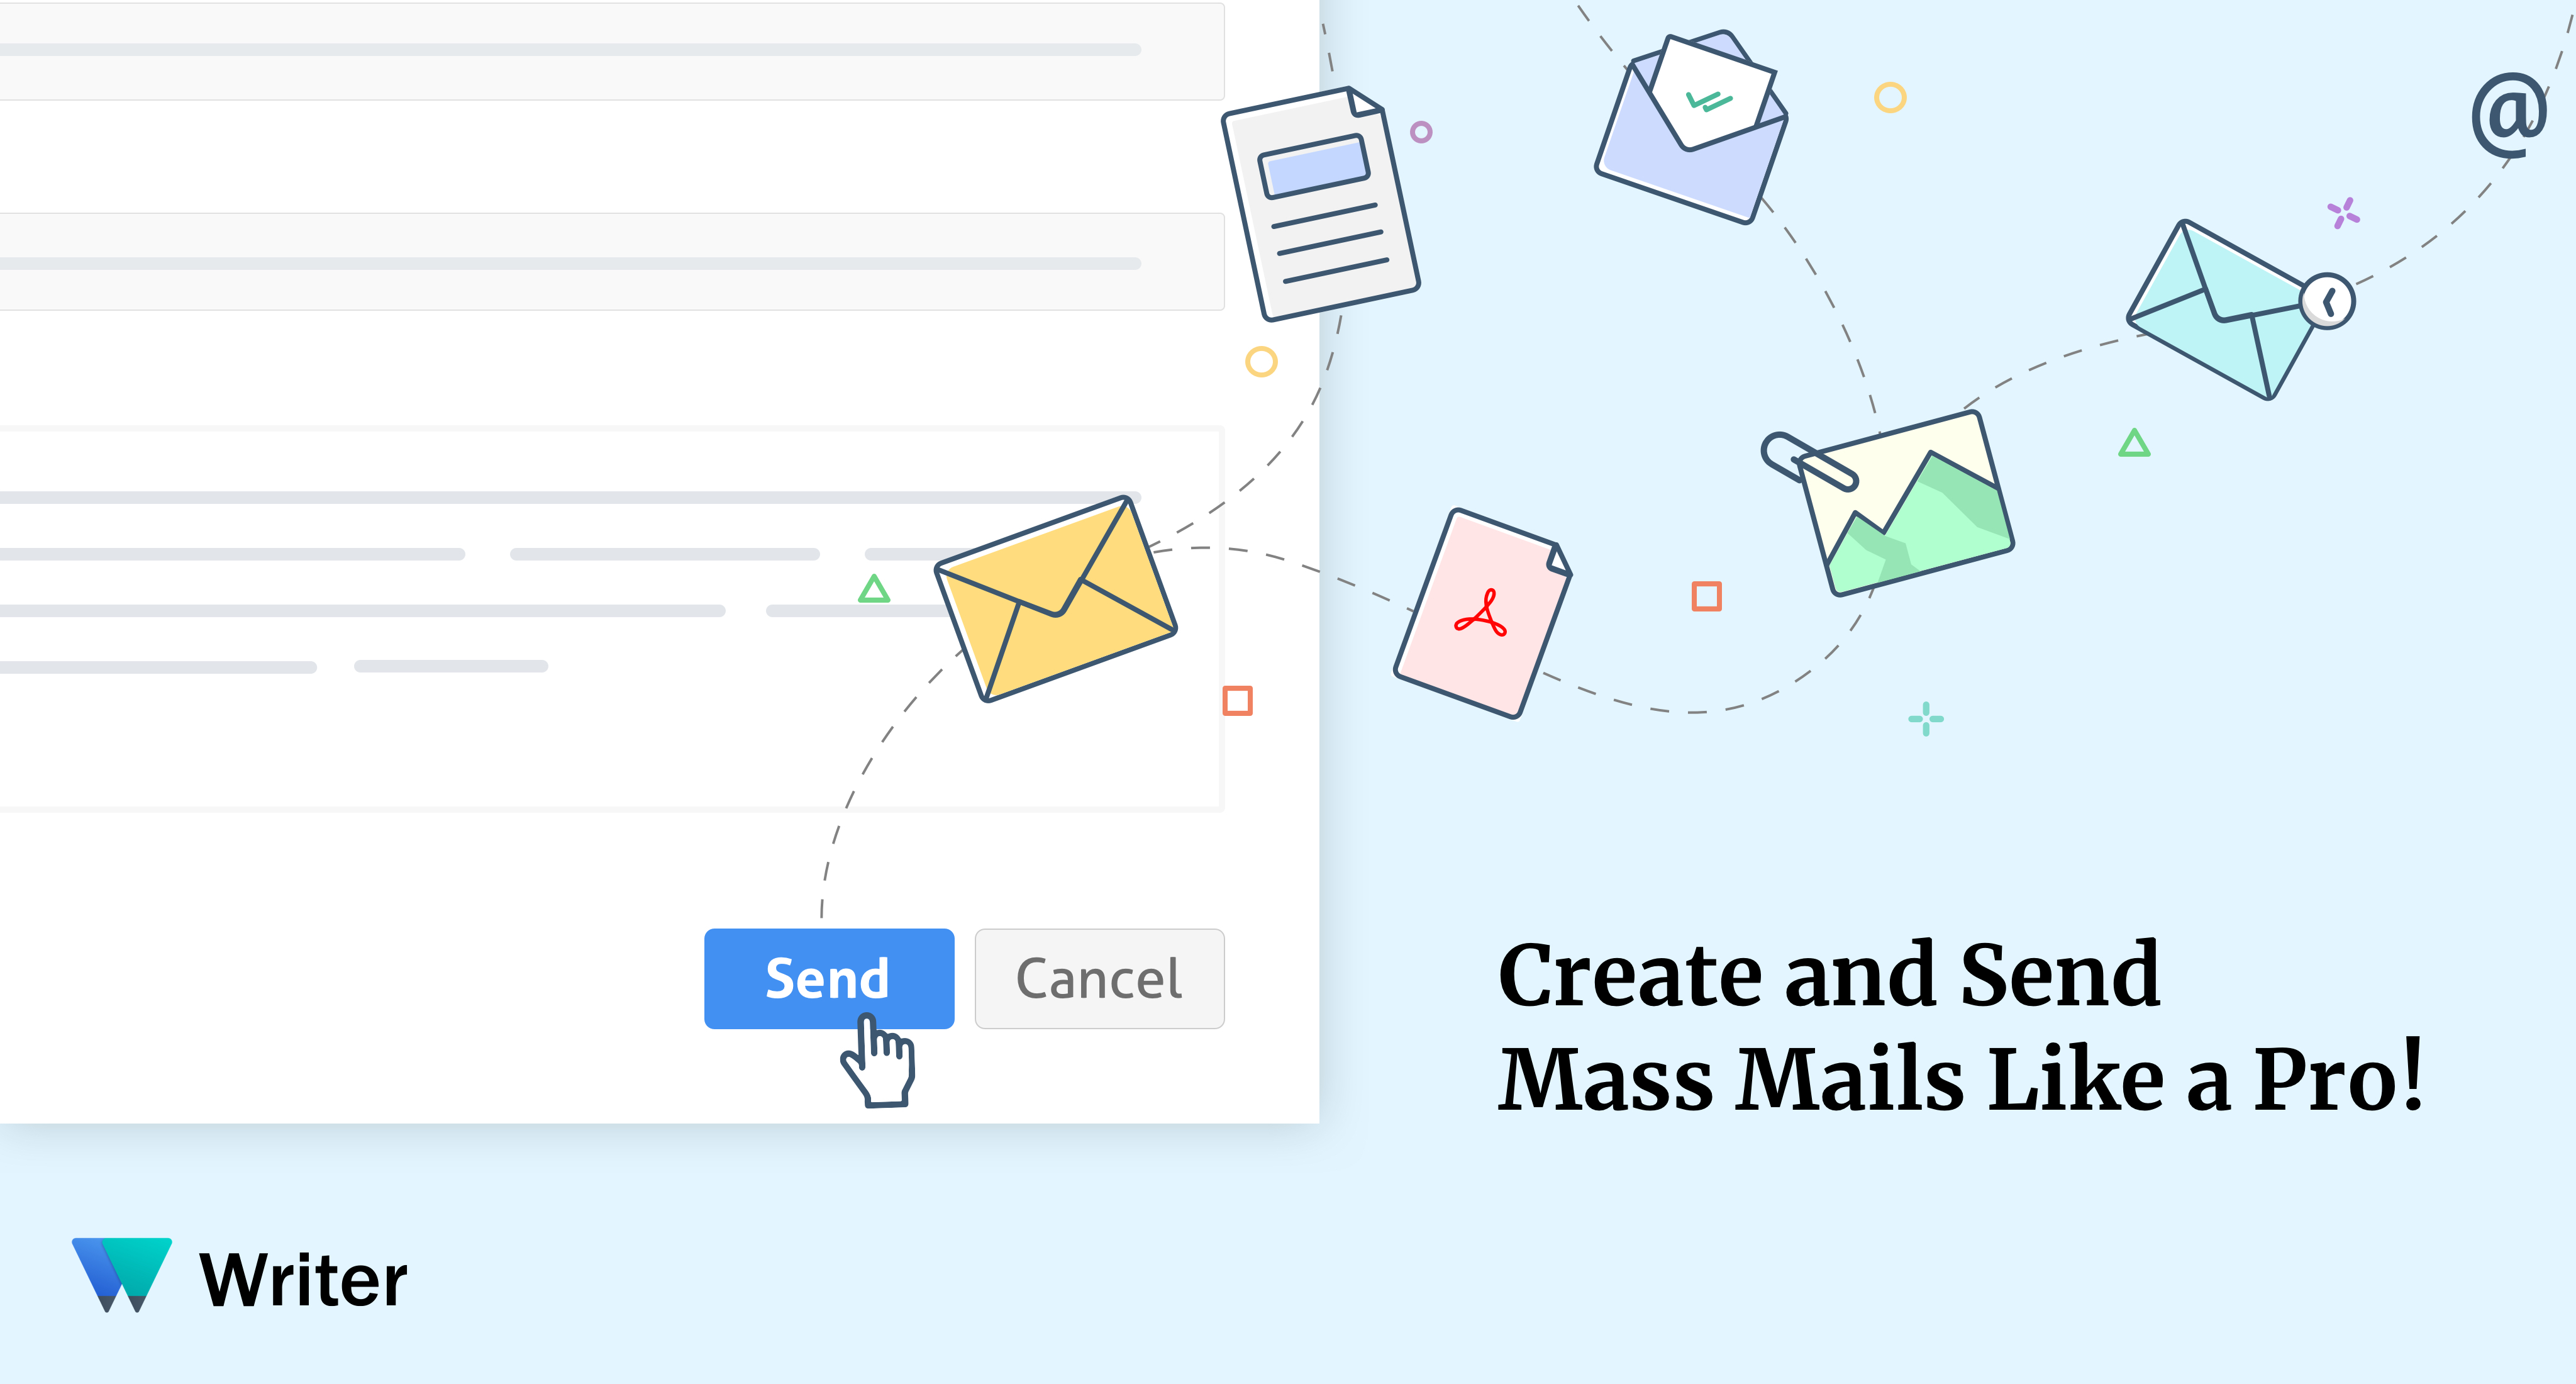 How Mail Merge Can Help You Personalize and Send Mass Mails « Zoho Blog